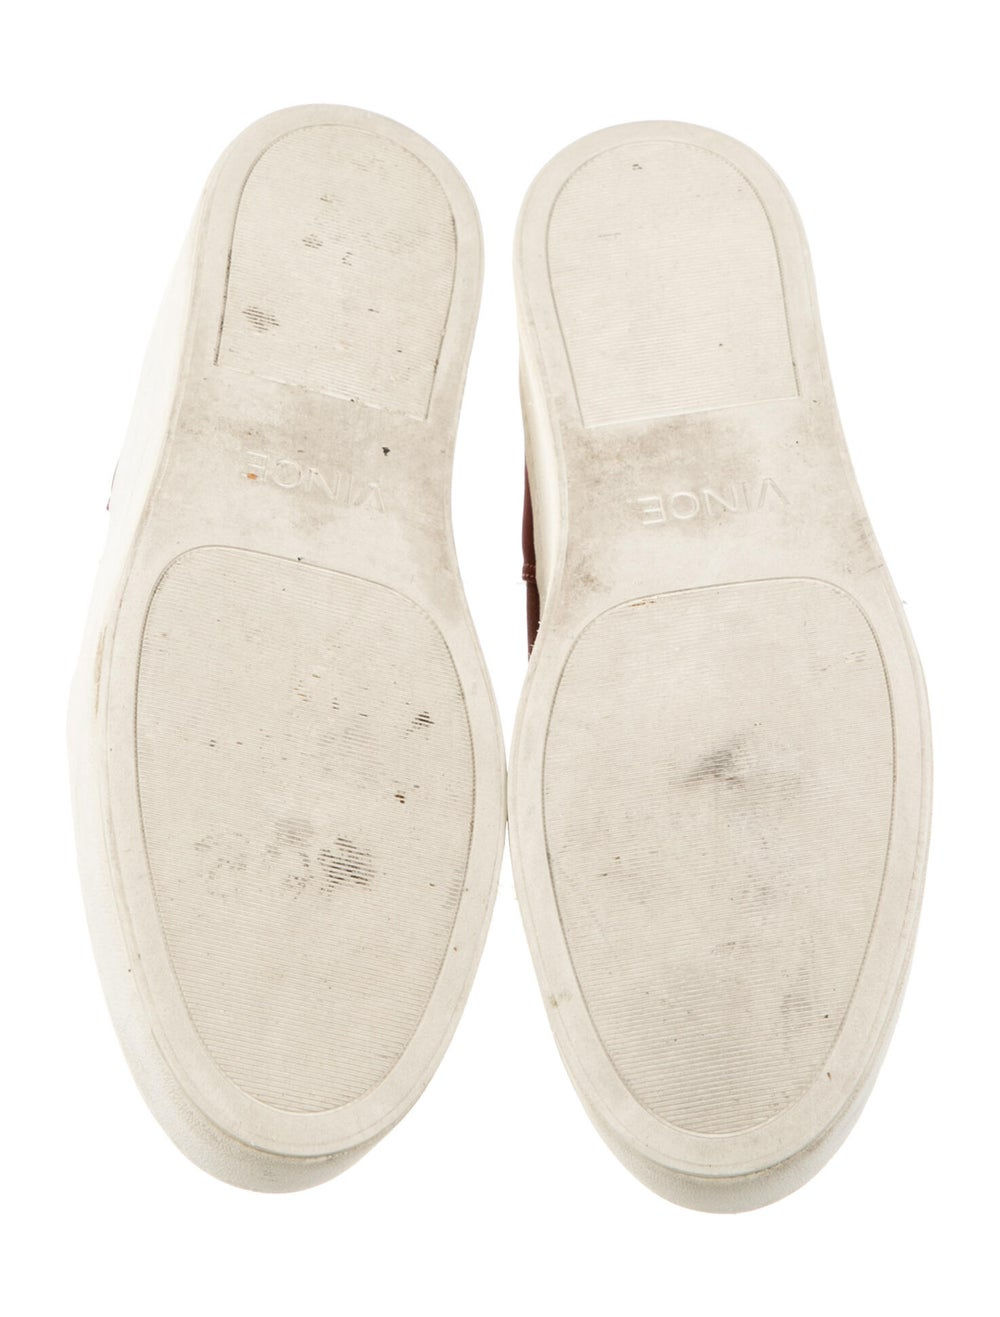 Vince Sneakers - image 5